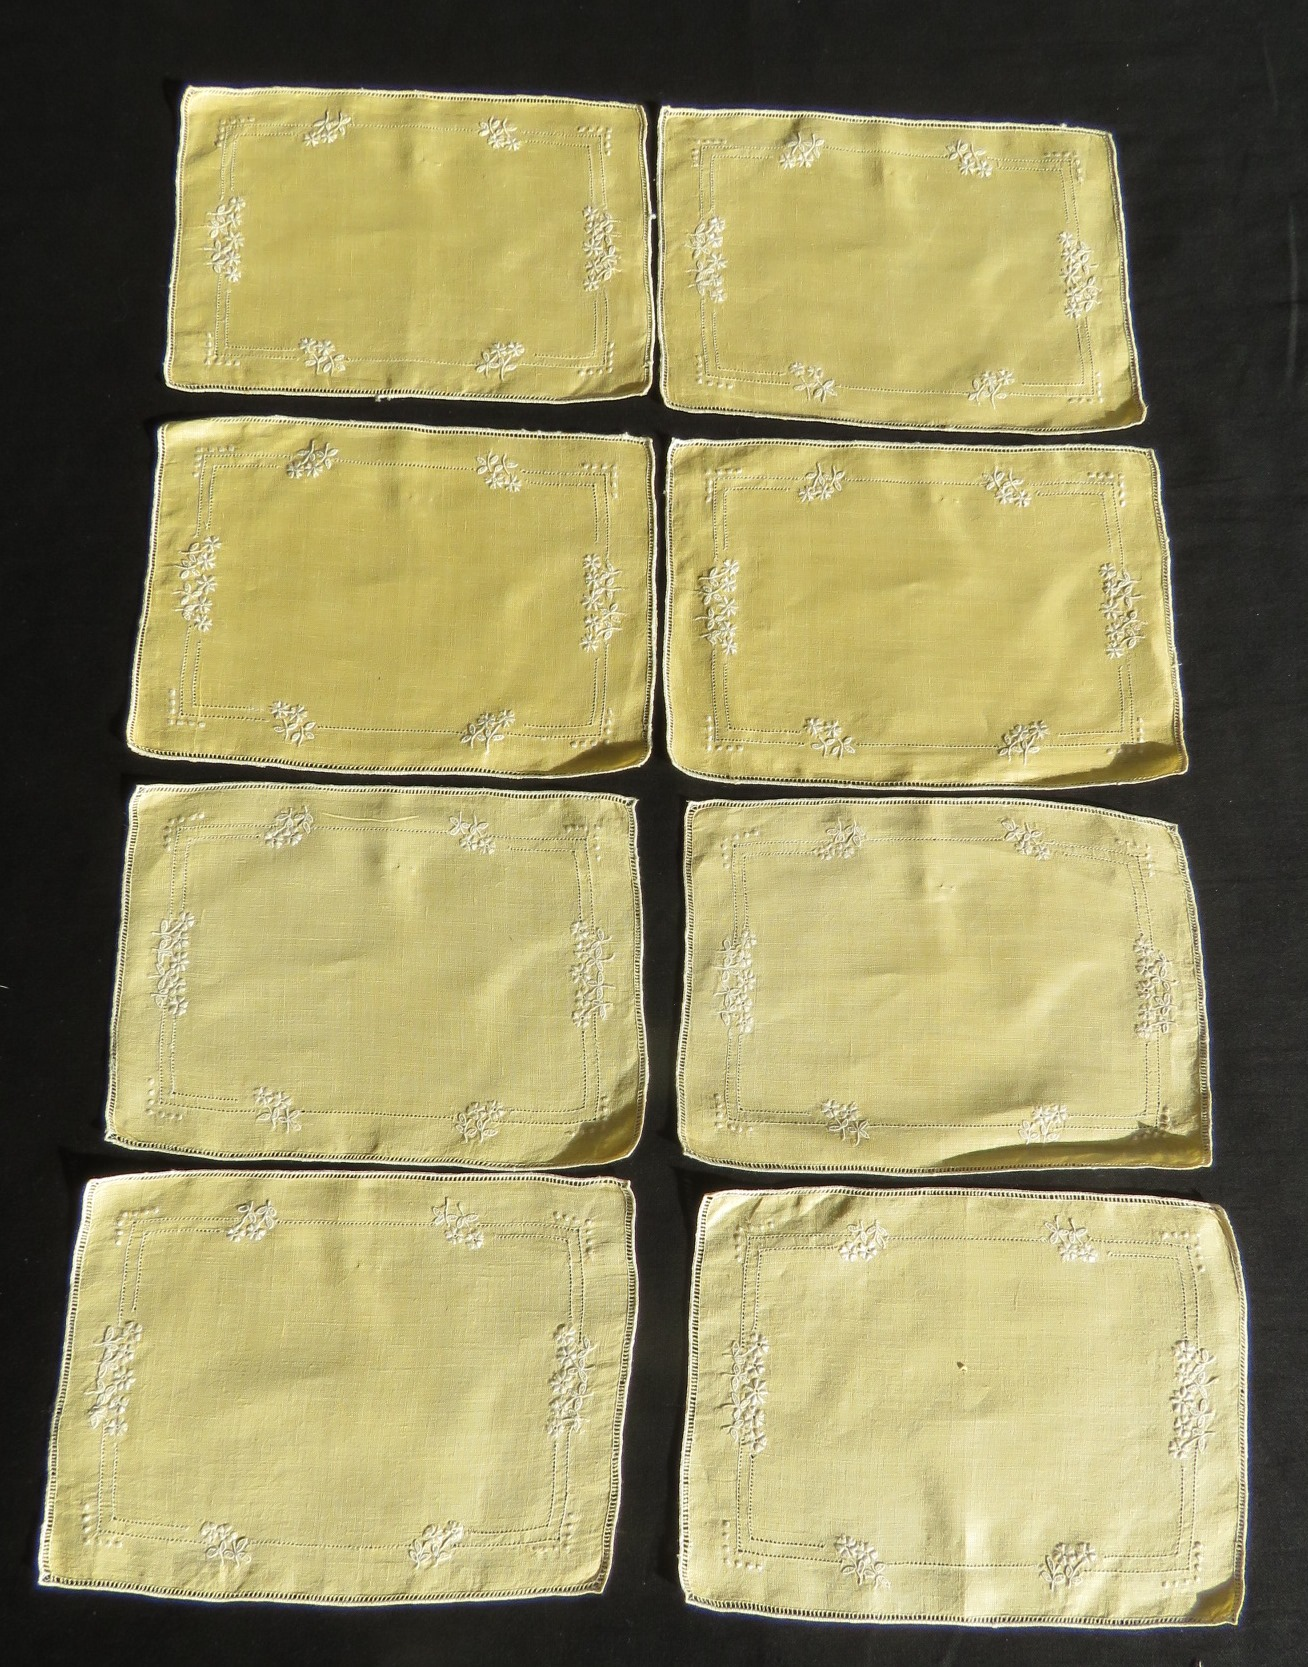 8 Vintage Cocktail Napkins Embroidered Table Coasters Gold Yellow Color (L&T-738)